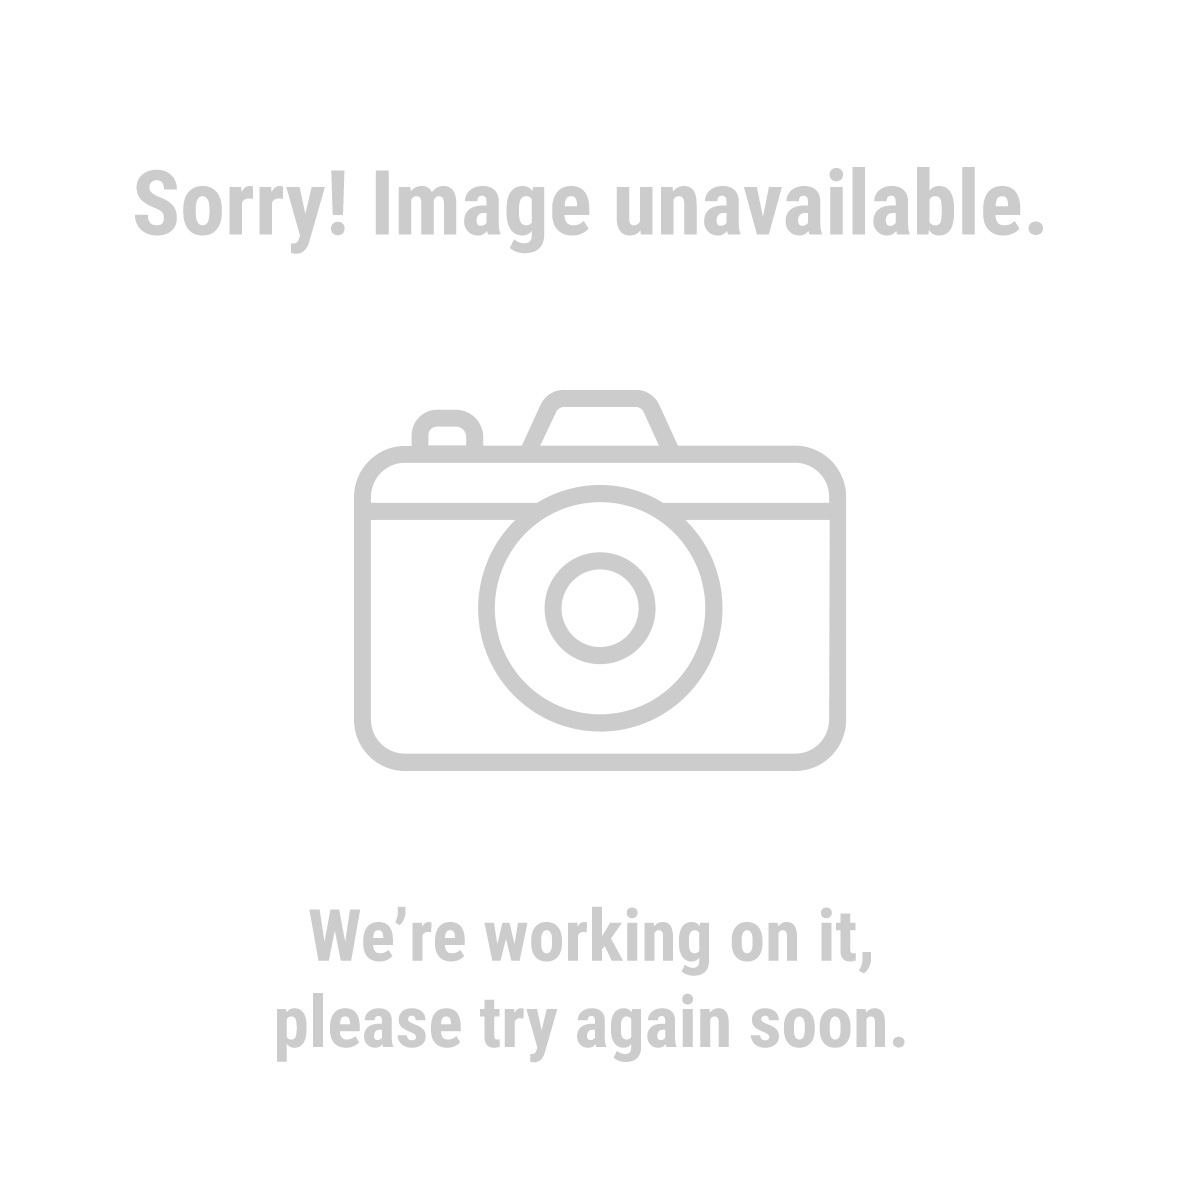 HFT 69039 10 ft. x 17 ft. Portable Garage